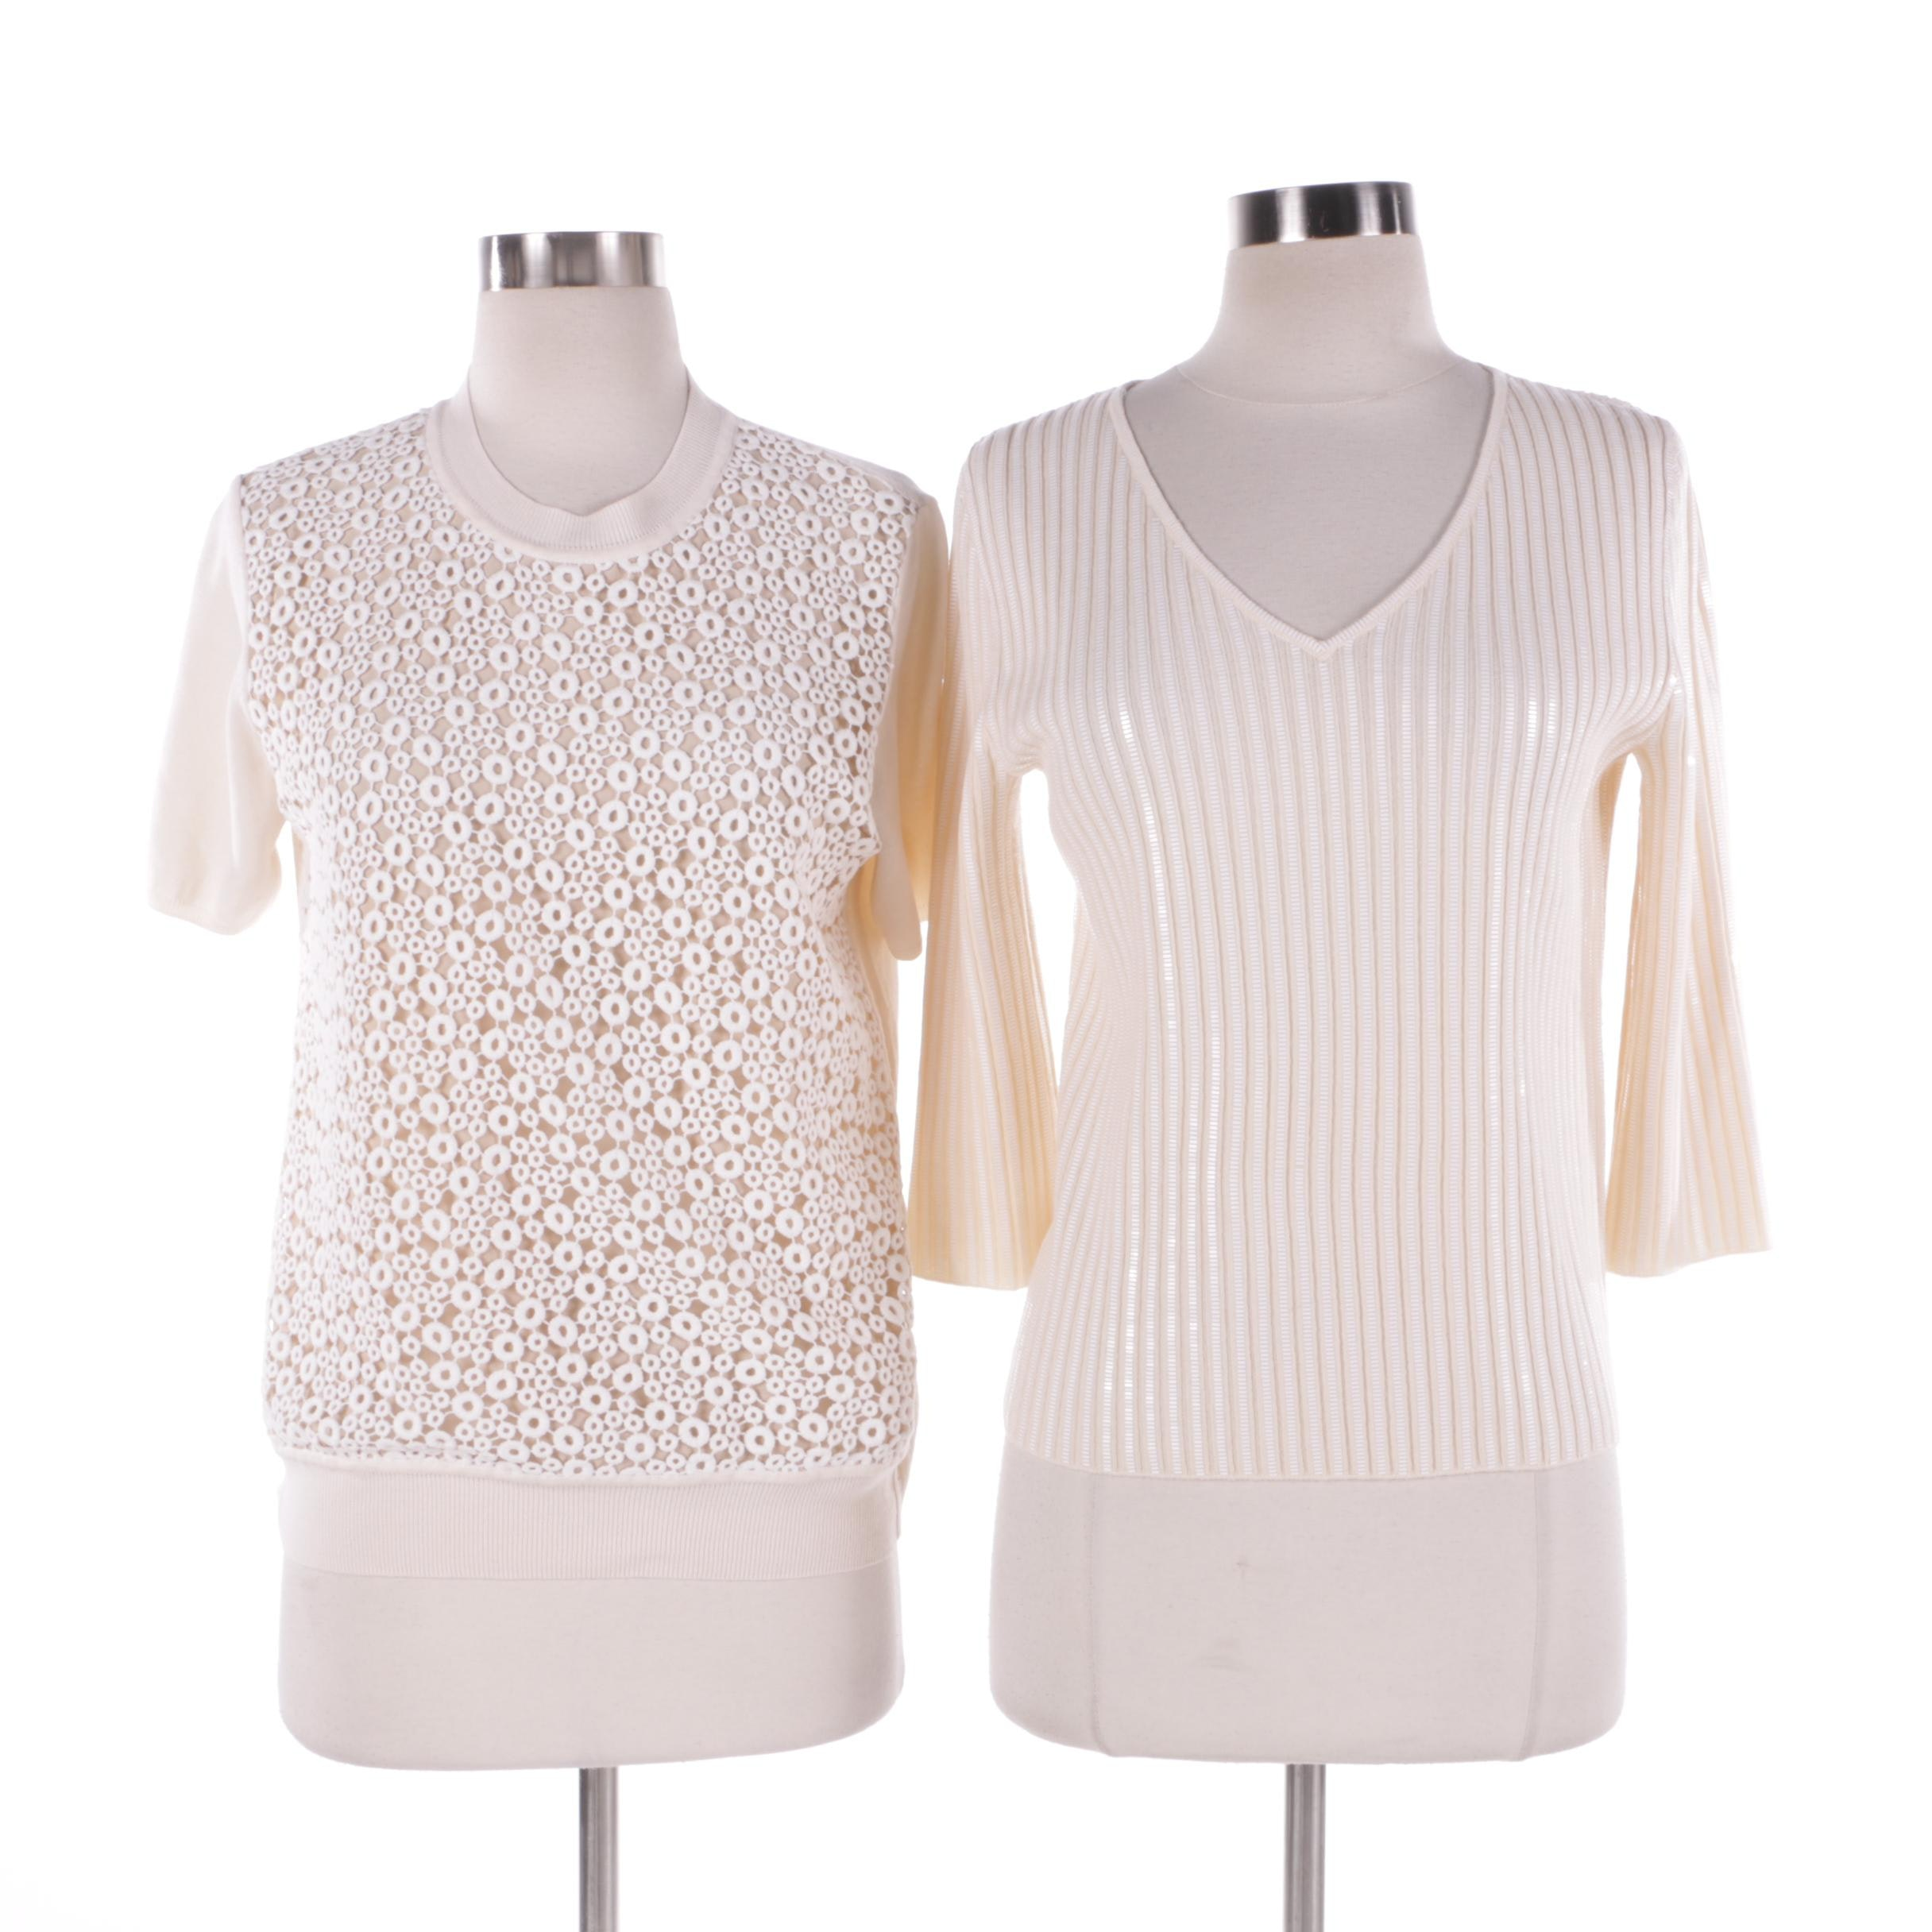 Chloé and St. John Evening Knit Tops in Cream